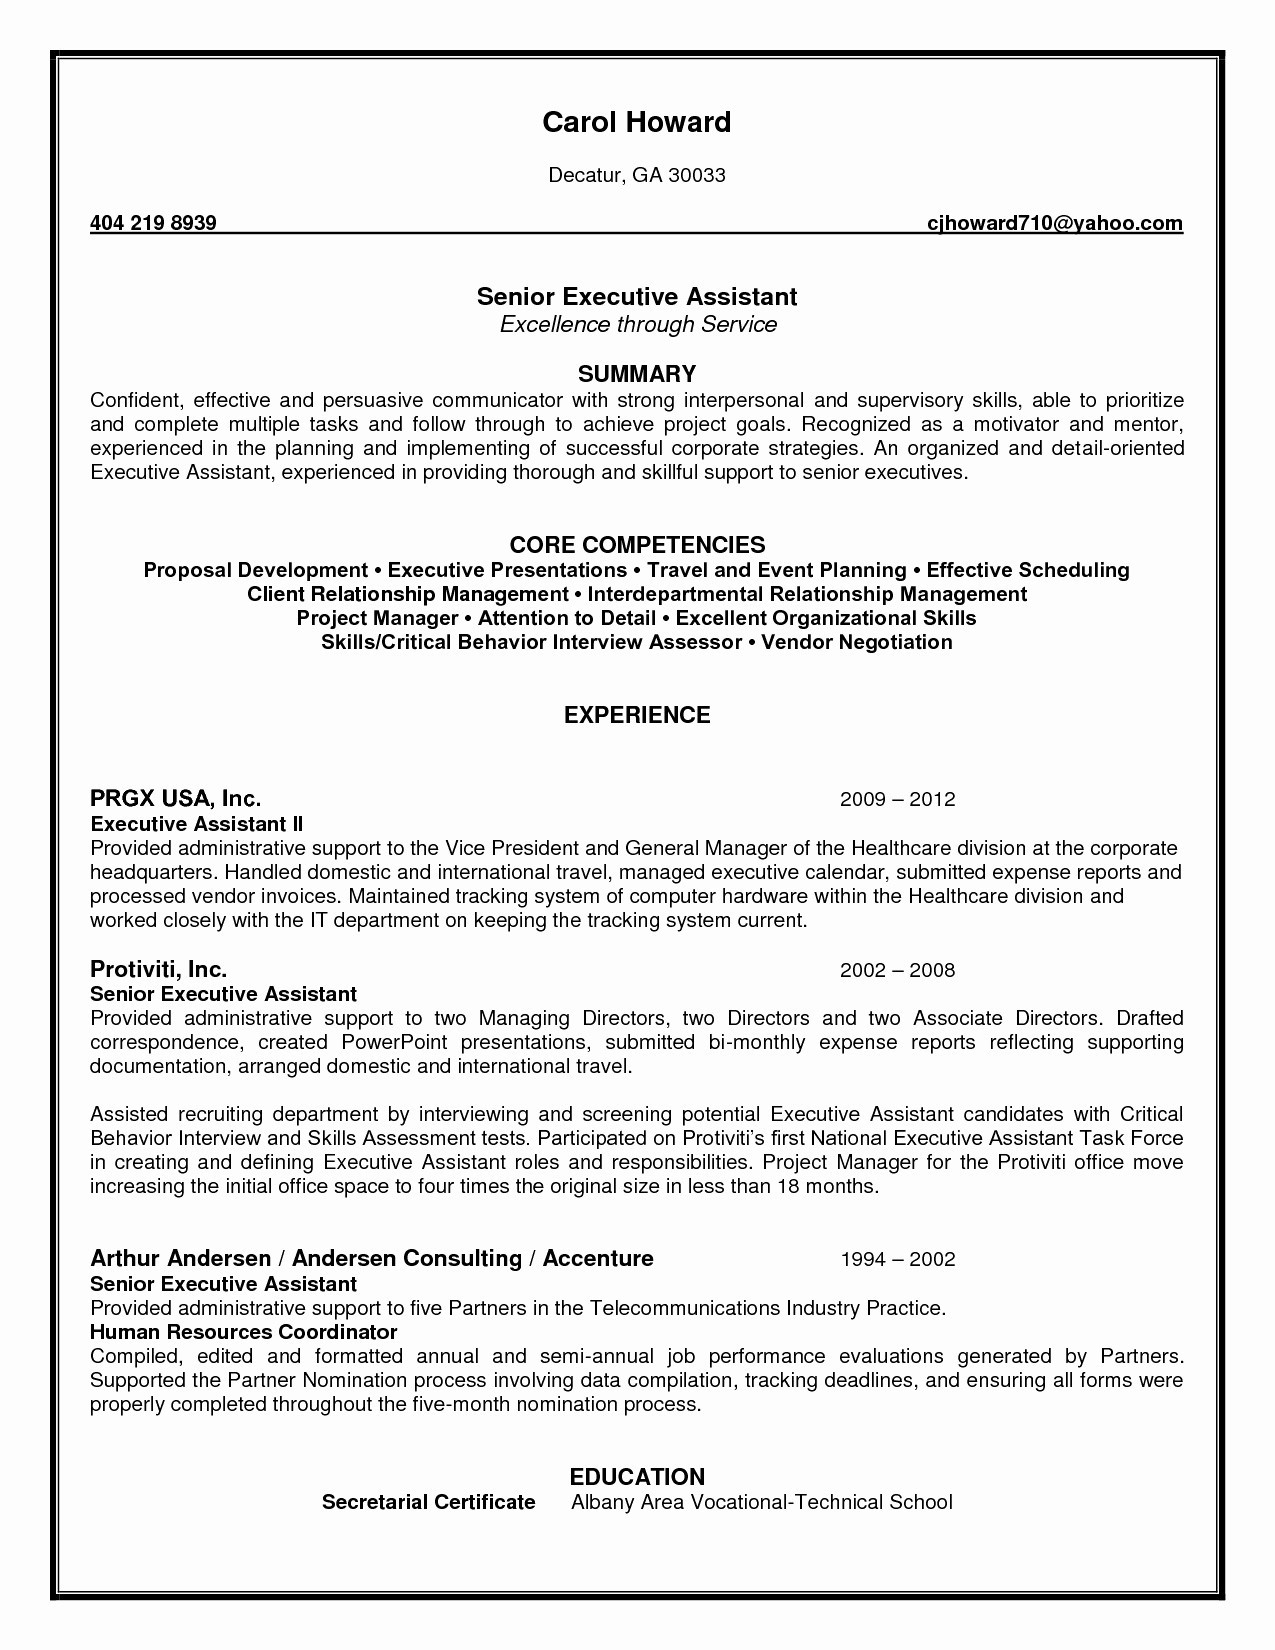 Medical Office assistant Resume - Executive assistant Resumes Unique Resume Template Executive